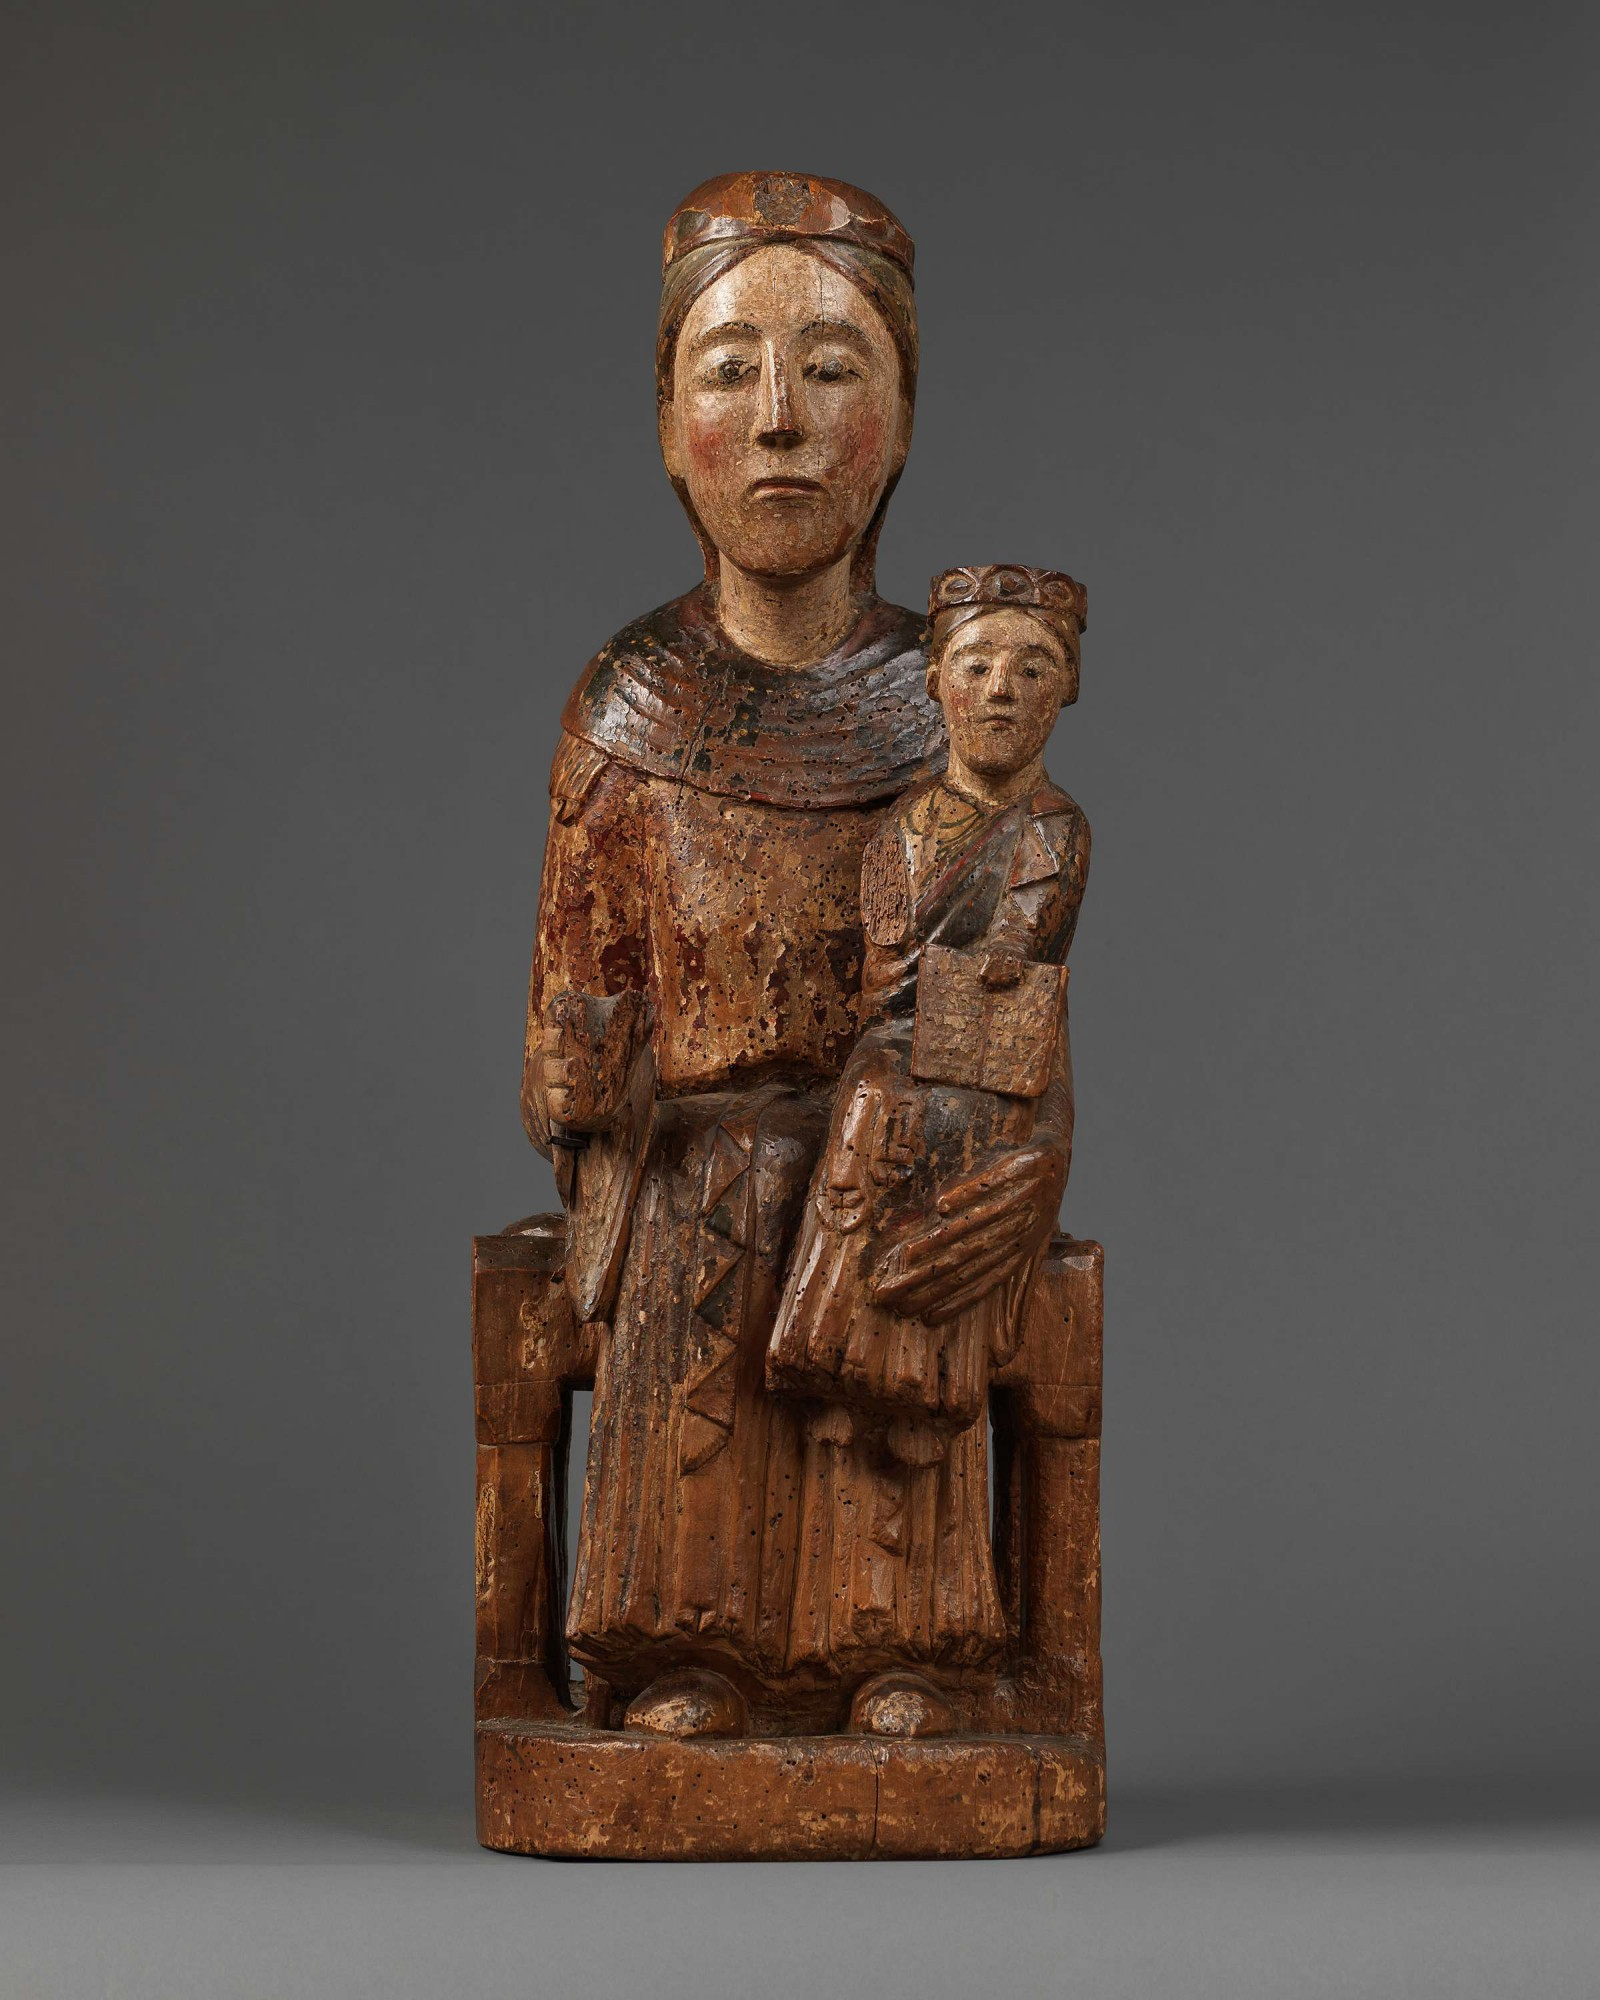 Enthroned Virgin and Child, Sedes Sapientiae, Eastern France, last quarter 12th century